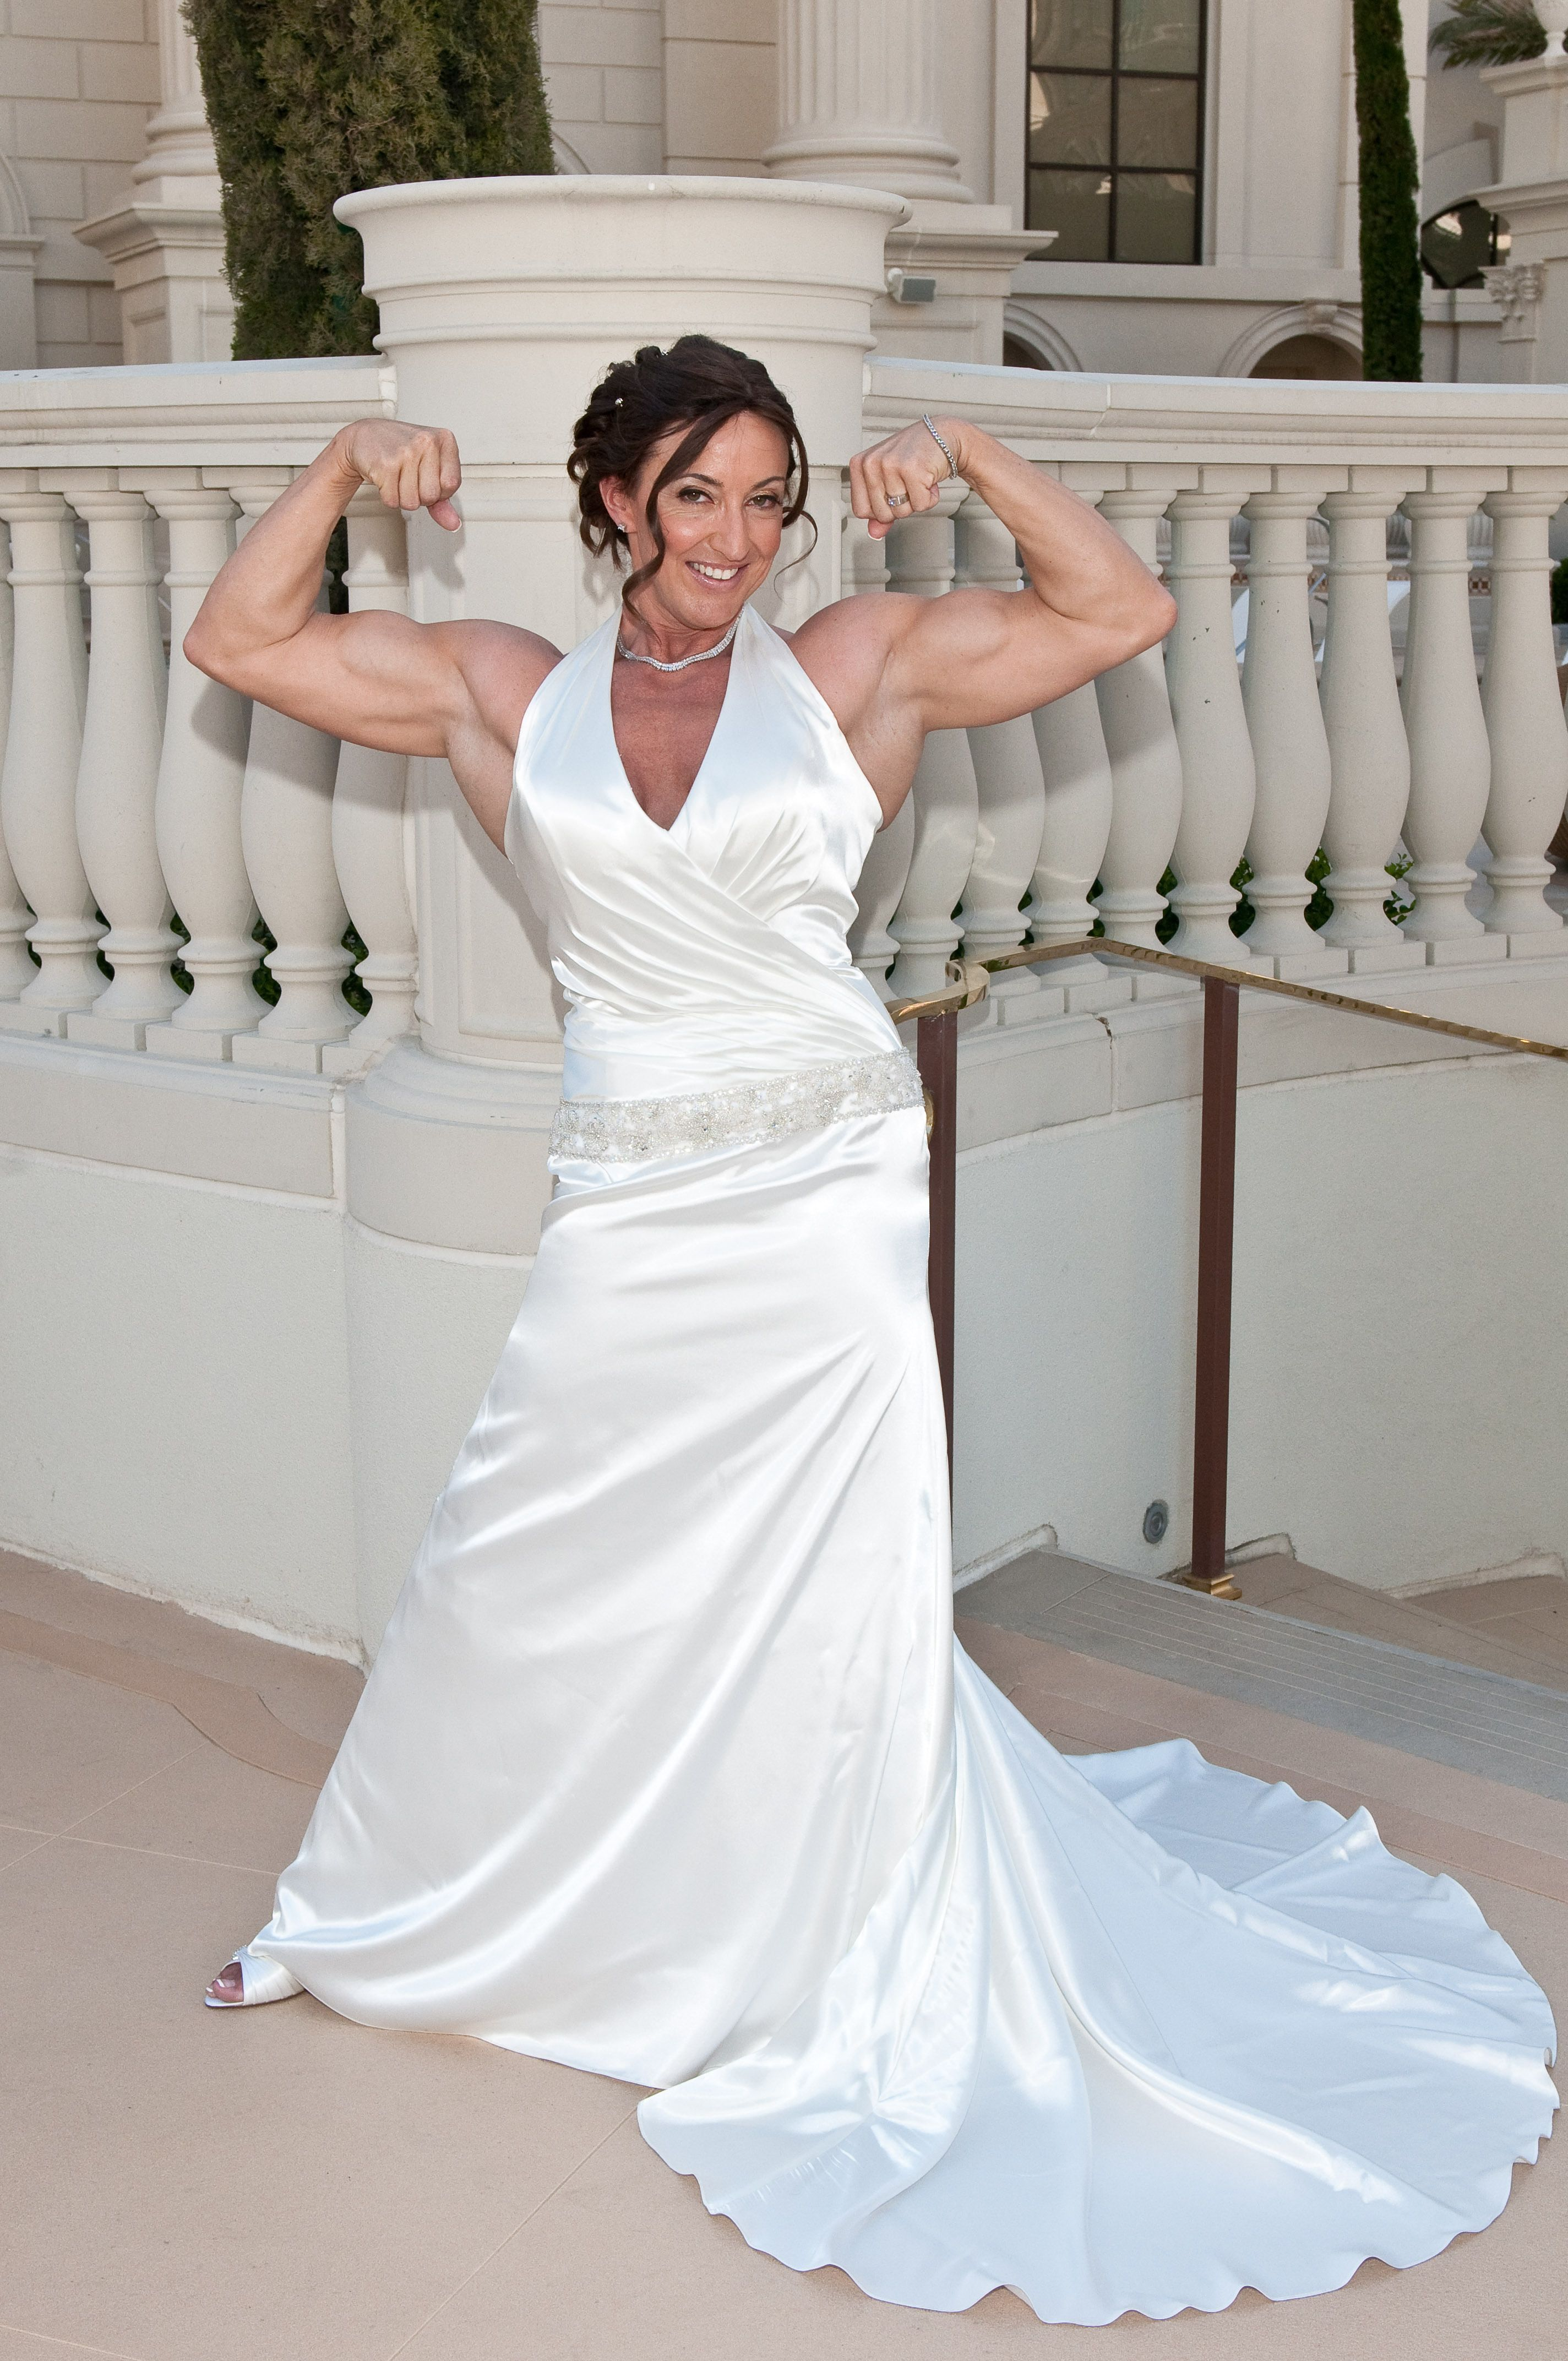 Bettina Kadet Salomone Bride Workout One Shoulder Wedding Dress Bride